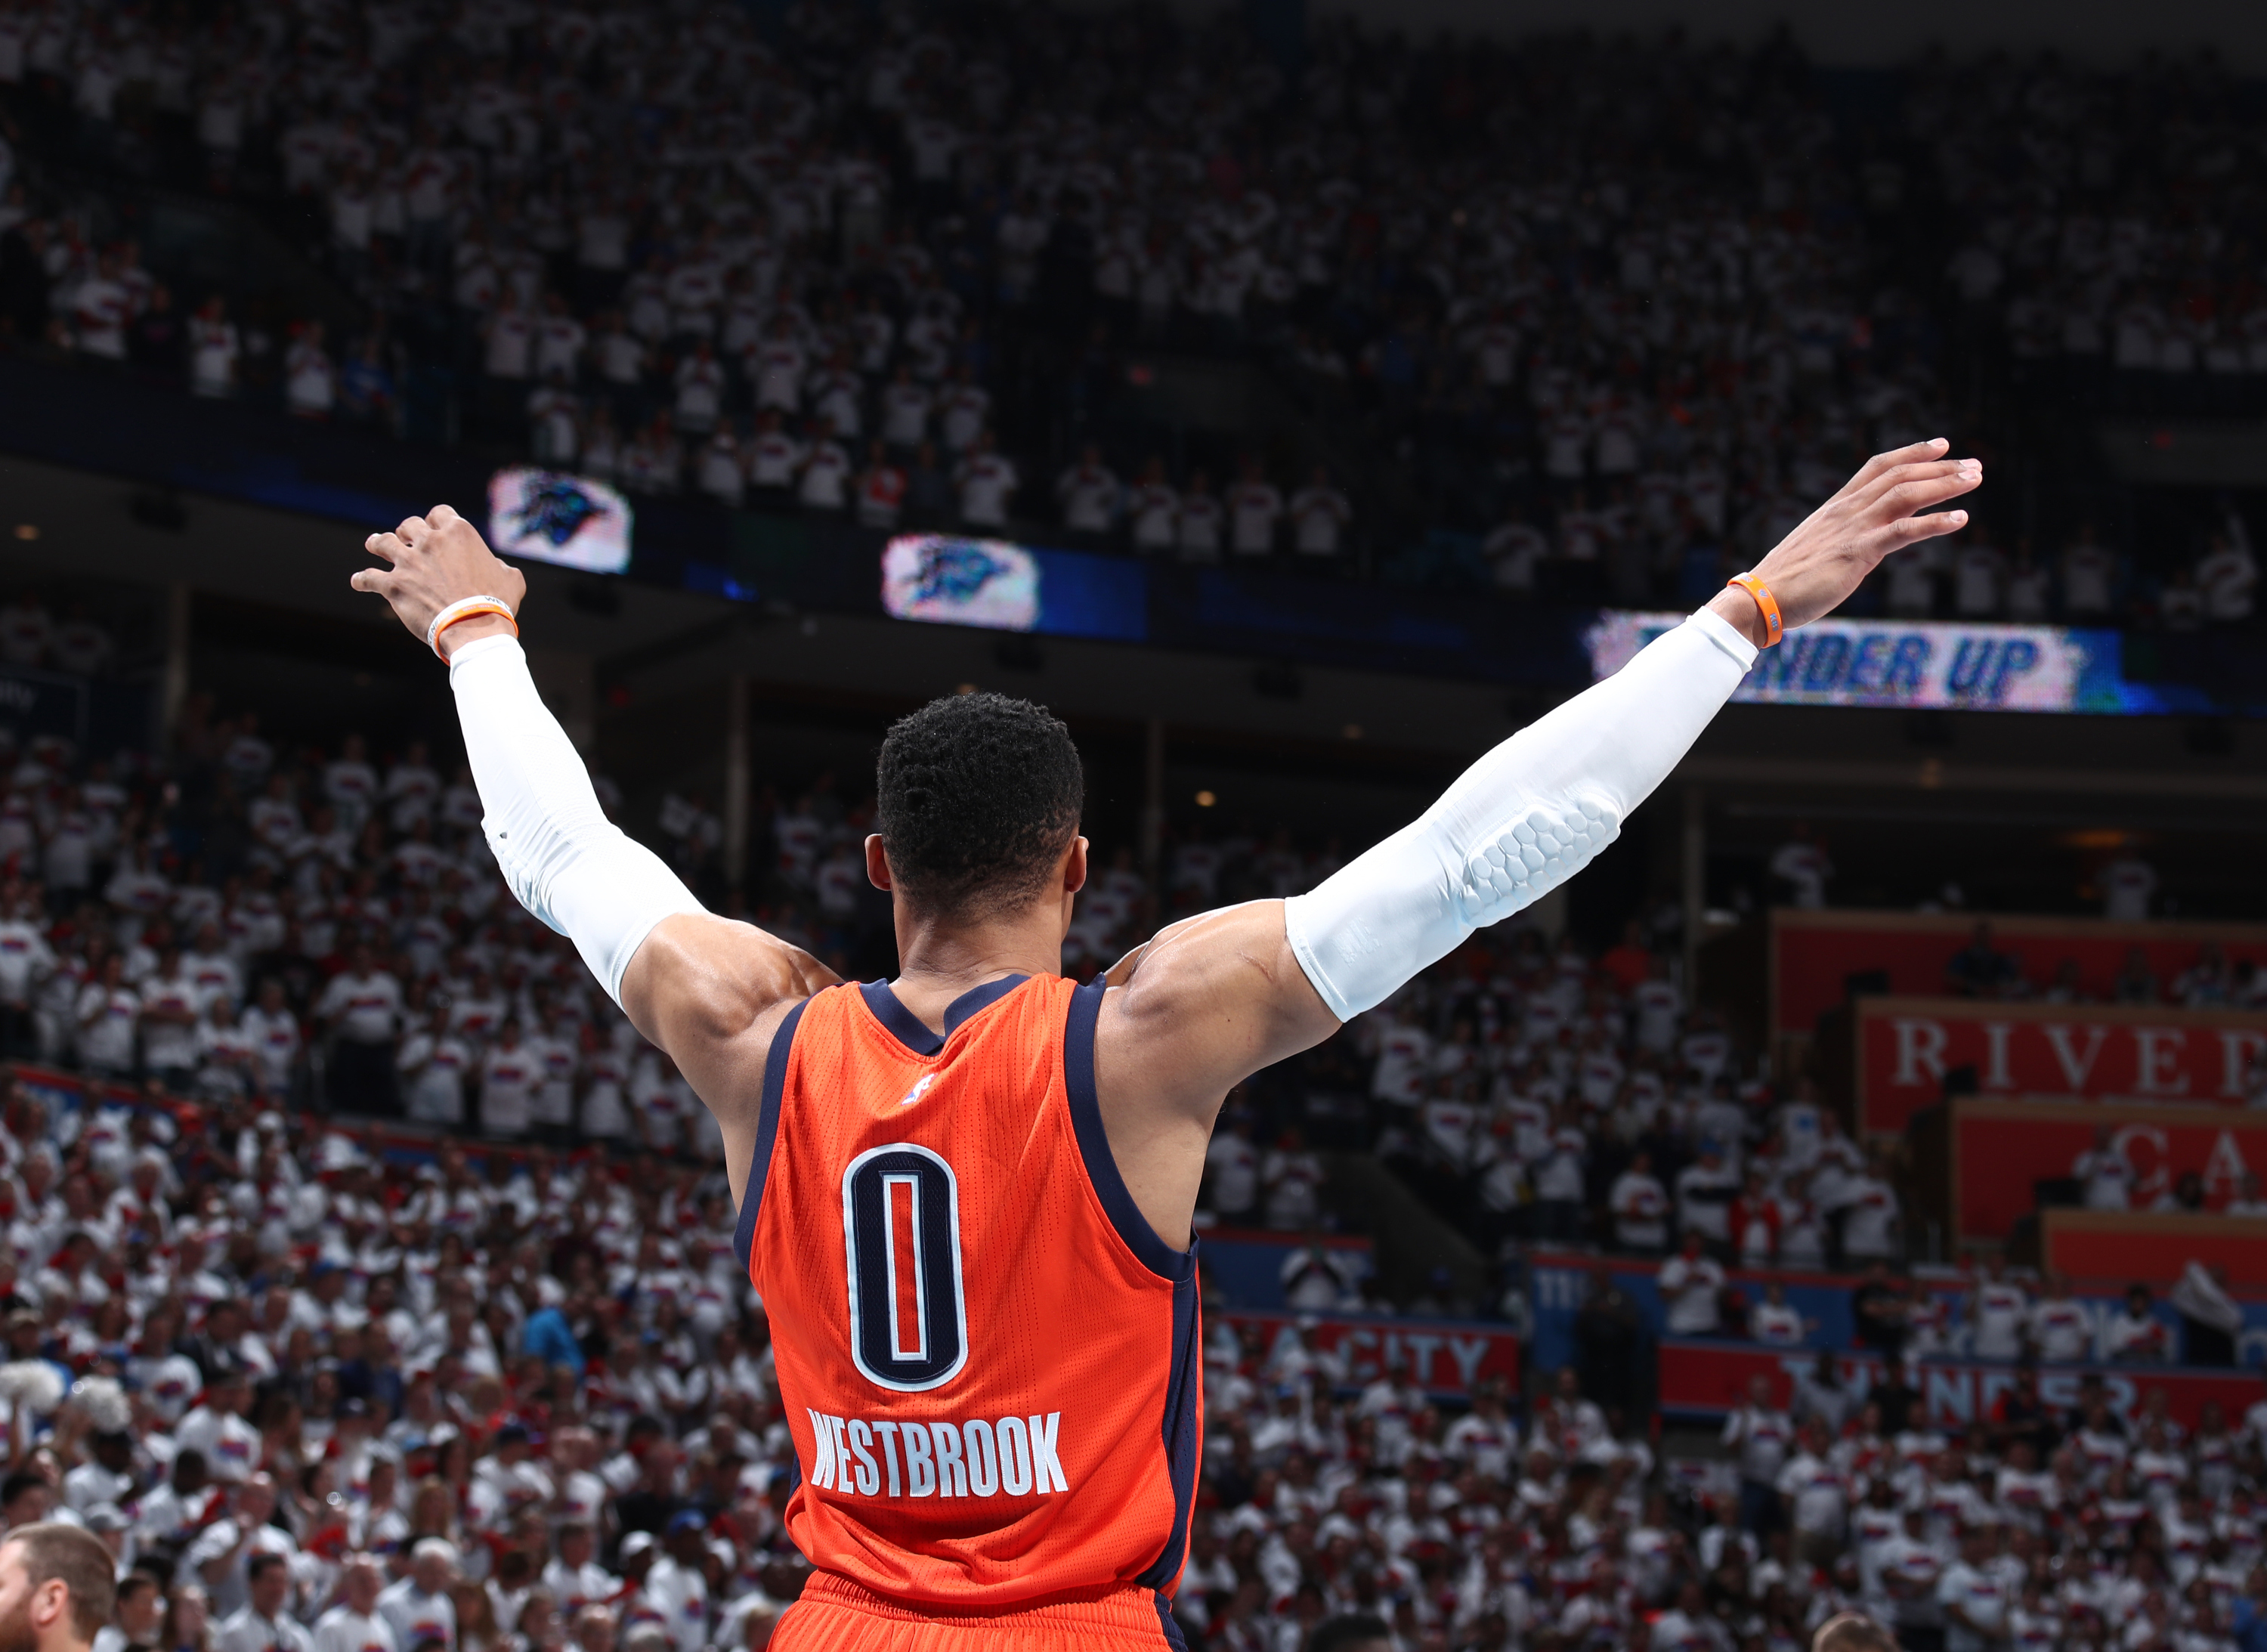 Russell Westbrook, Jordan Brand Sign 10-Year Extension